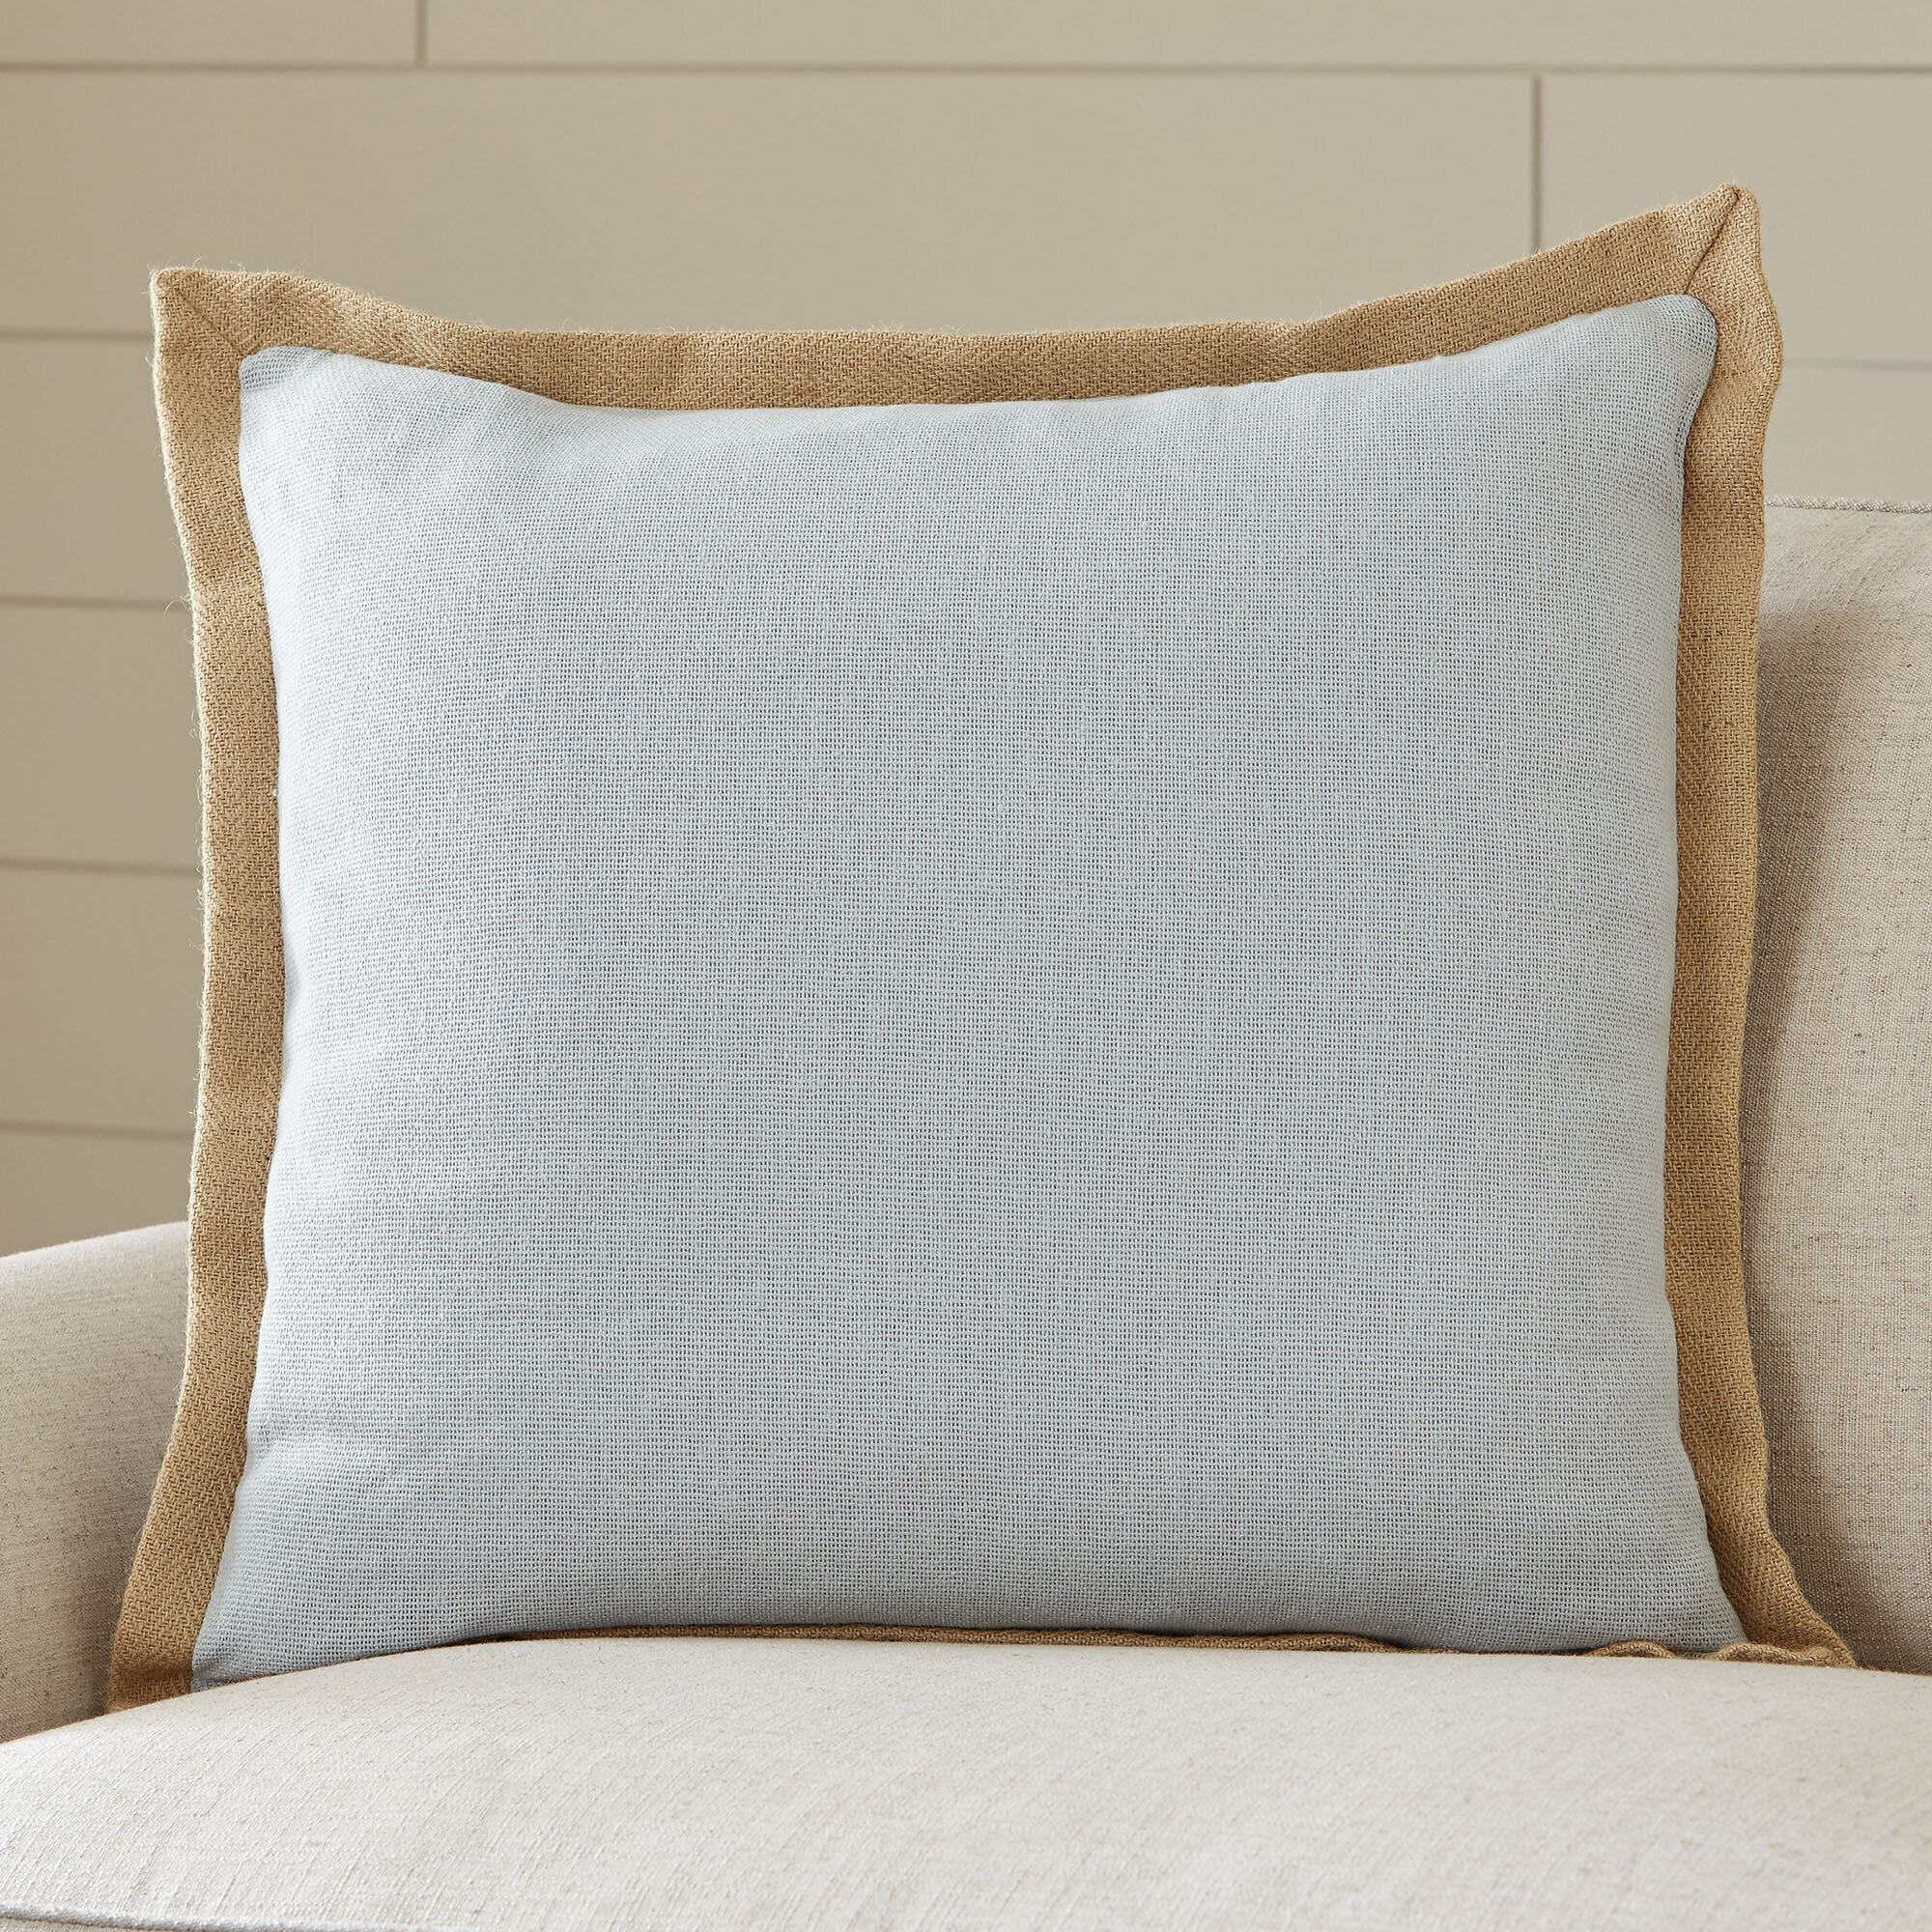 Birch Lane Heritage 22 Throw Pillow